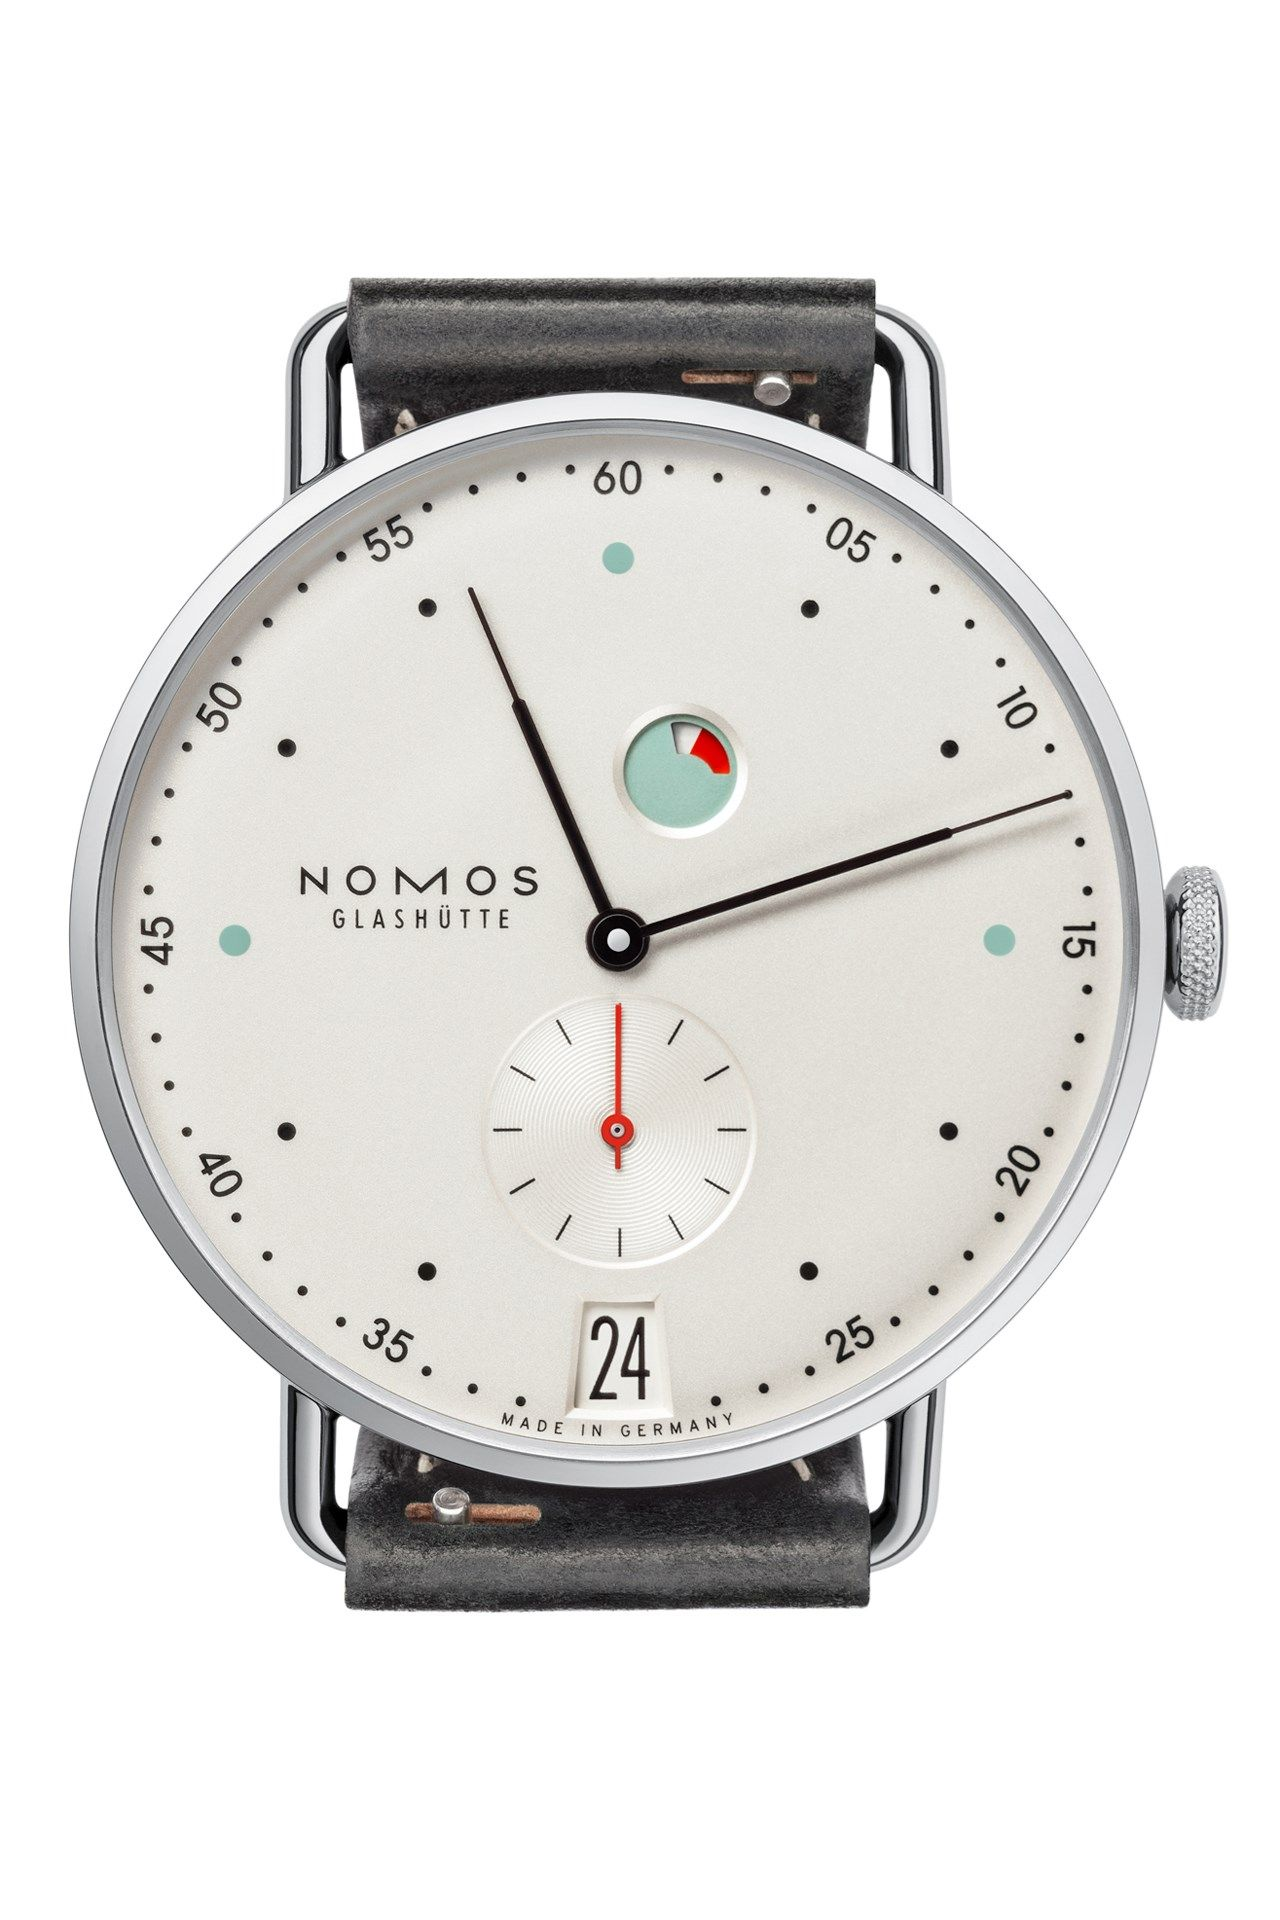 nomos makes its minimalist timepieces in the former east